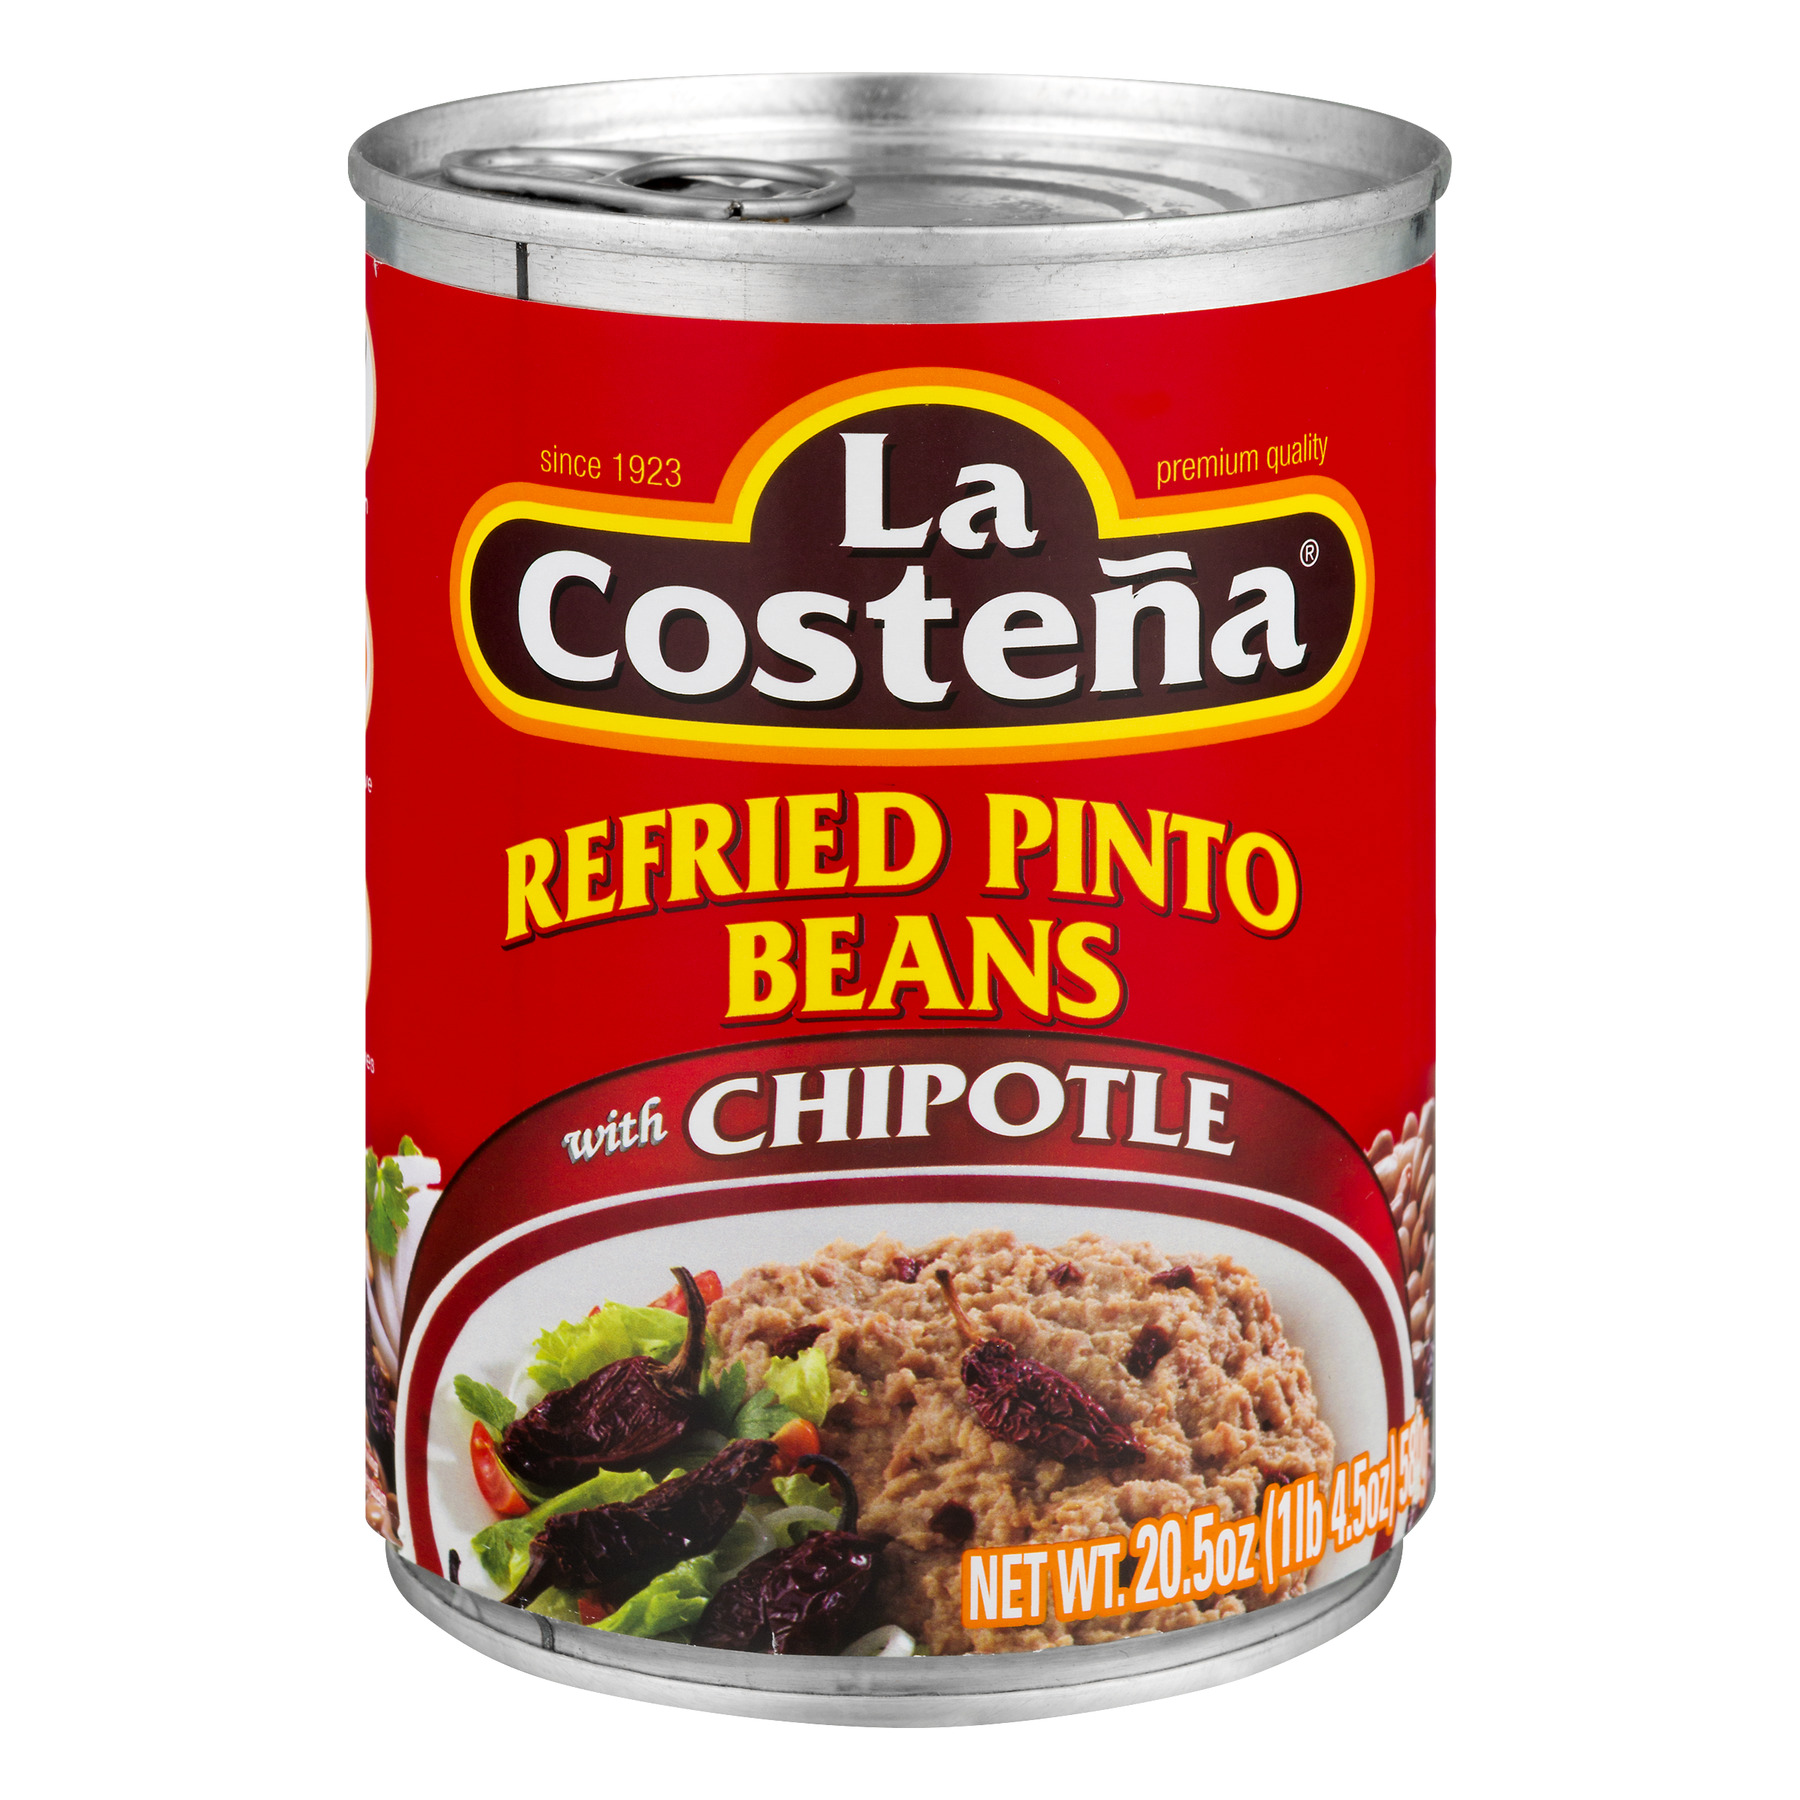 La Costena Refried Pinto Beans With Chipotle, 20.5 Oz